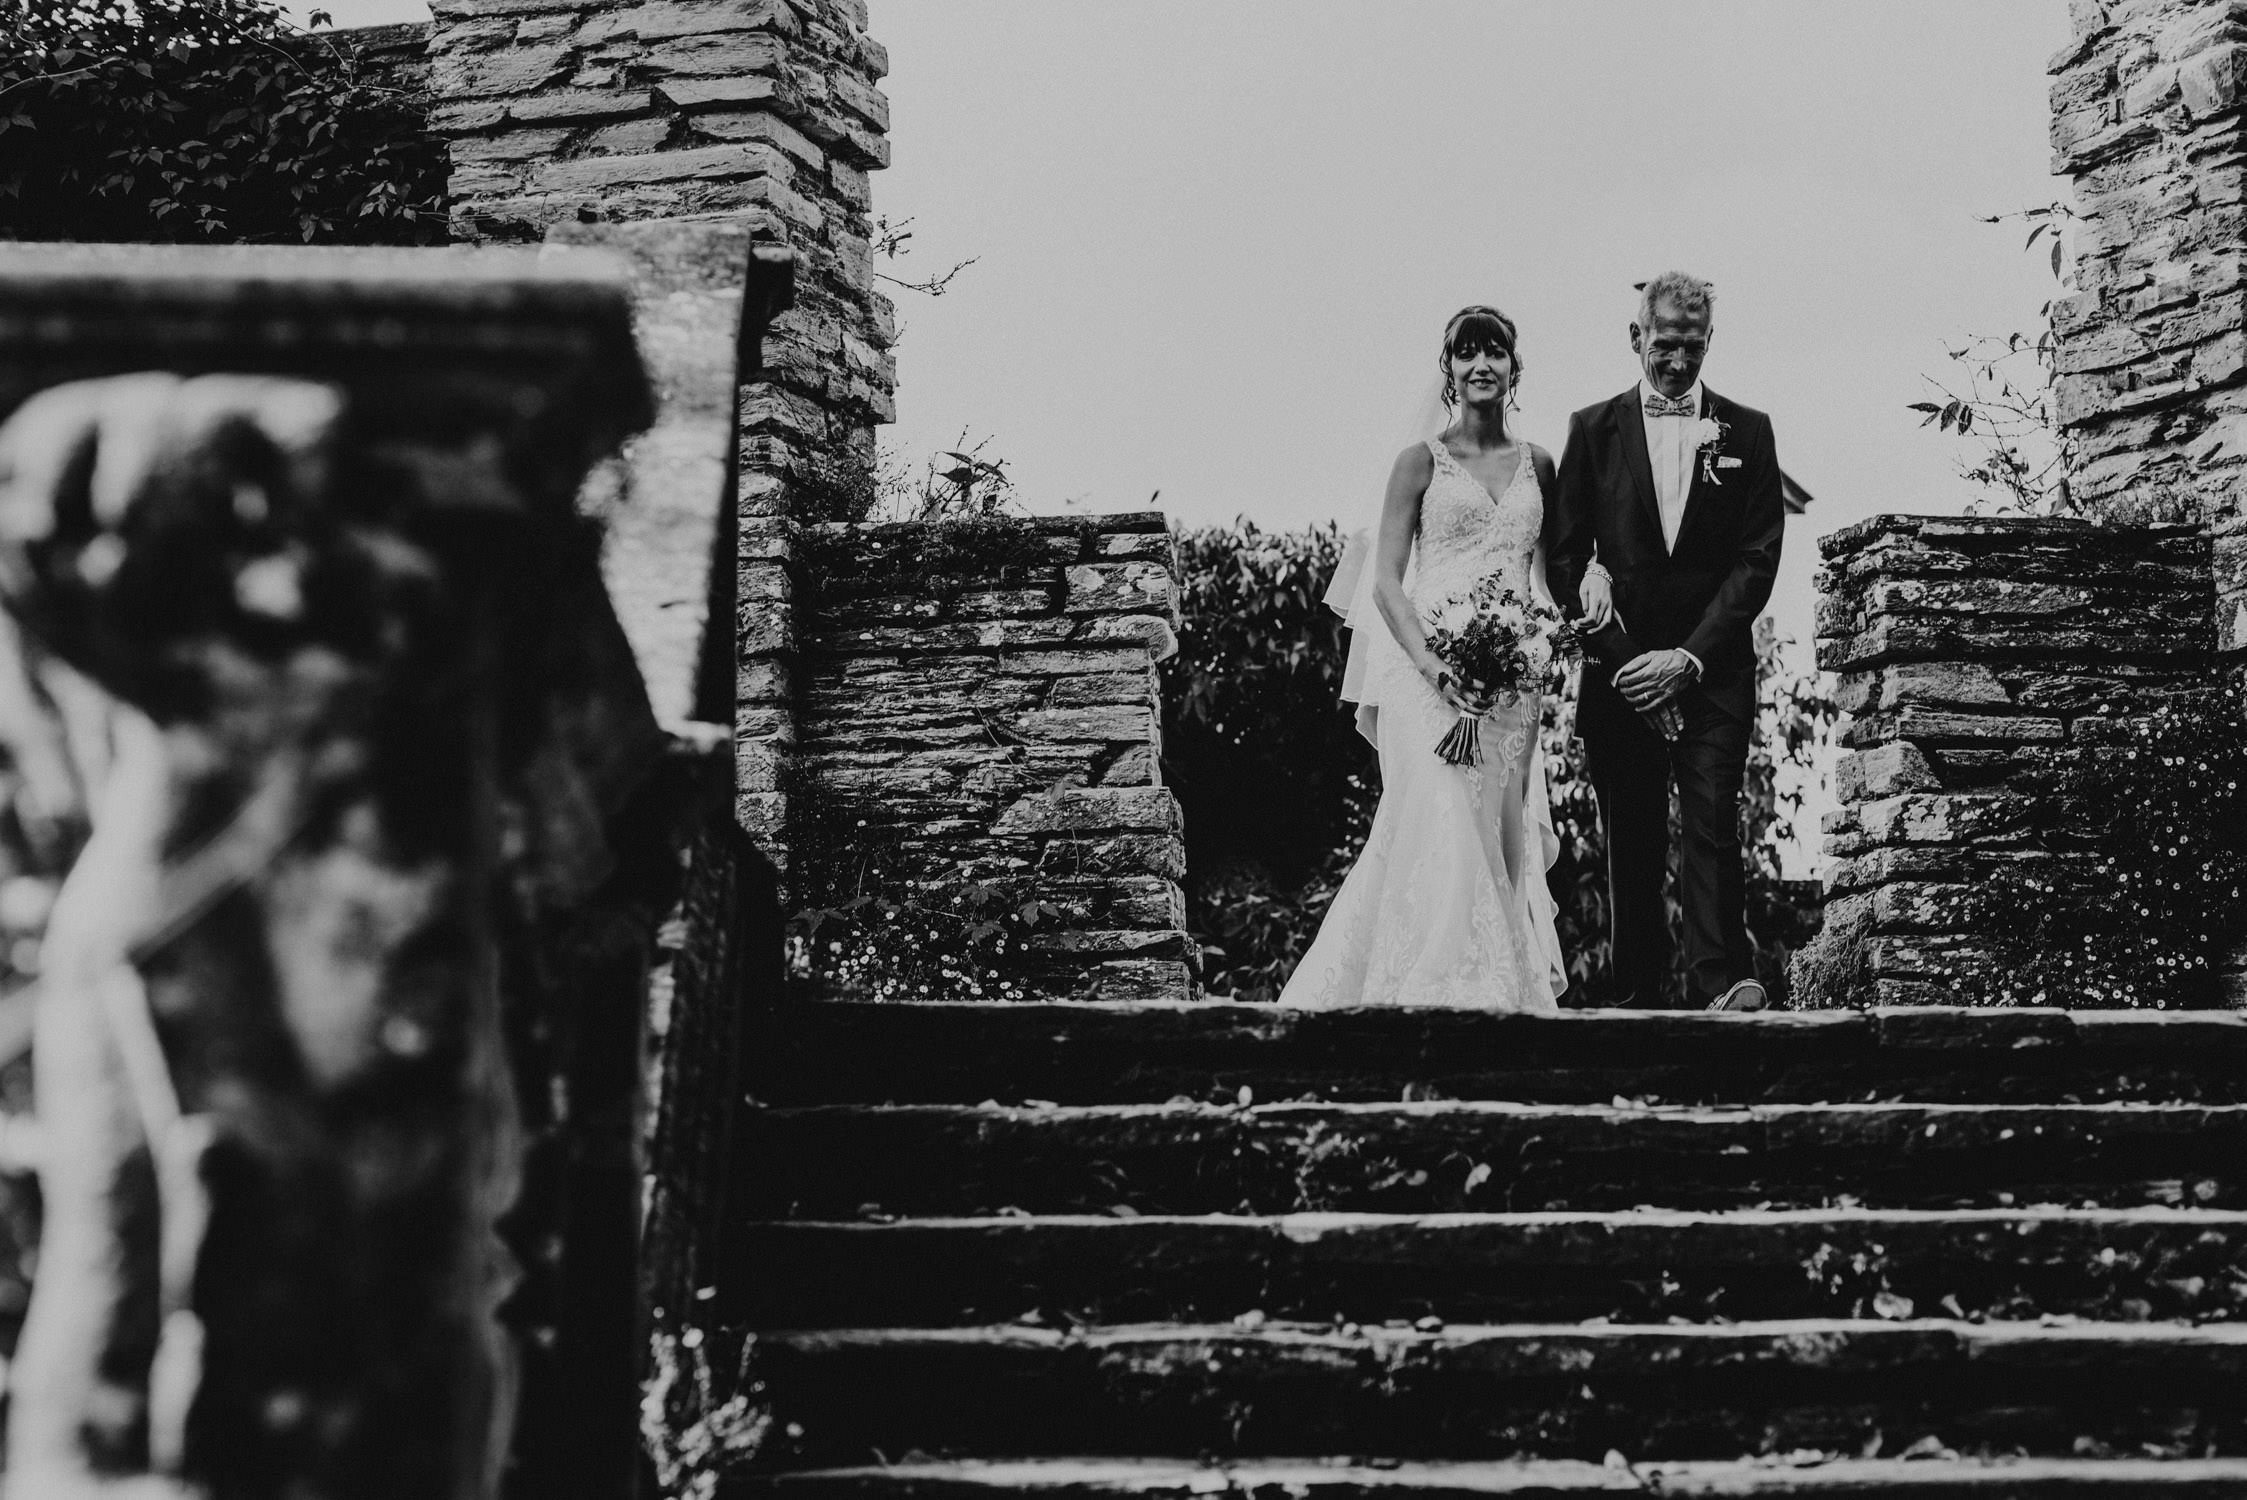 Hestercombe gardens wedding photographer, bride with father walking to ceremony, somerset wedding photographer, Hestercombe wedding